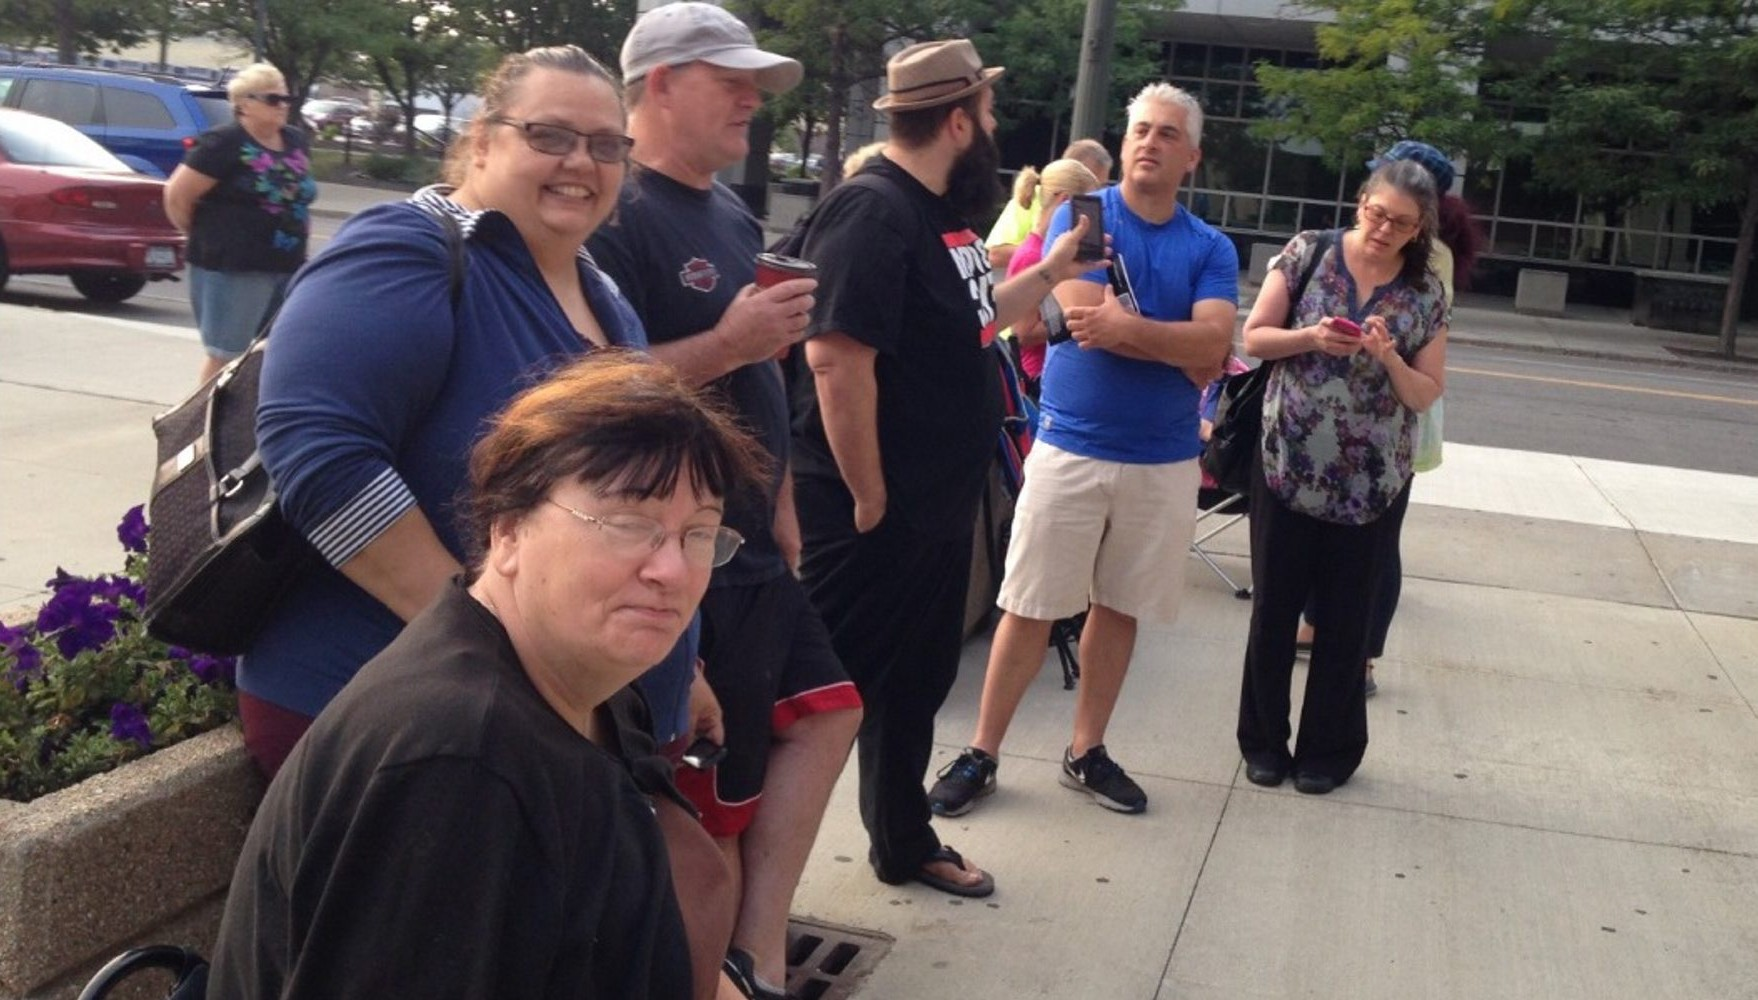 Fans wait outside First Niagara Center in hopes of getting tickets for the Paul McCartney concert. (Lou Michel/Buffalo News)